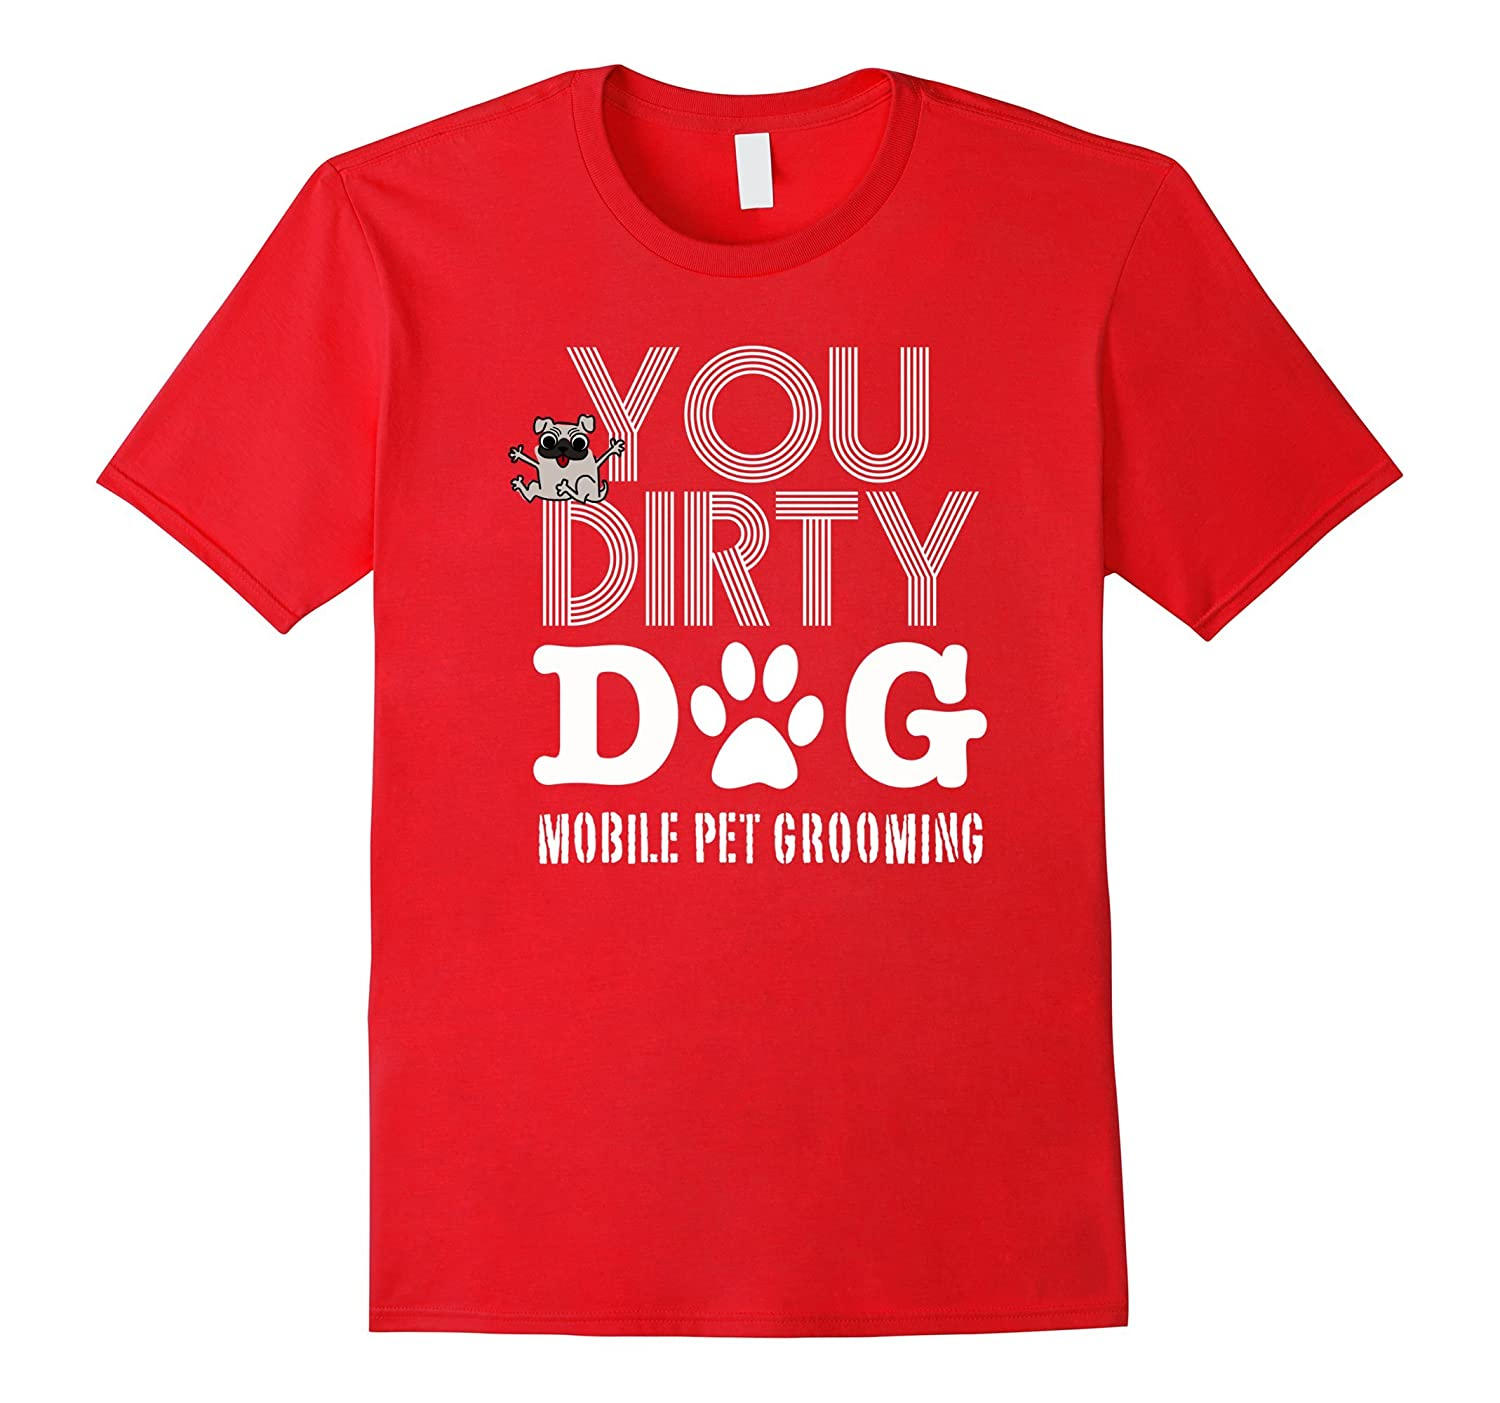 You Dirty Dog Mobile Pet Grooming-TH